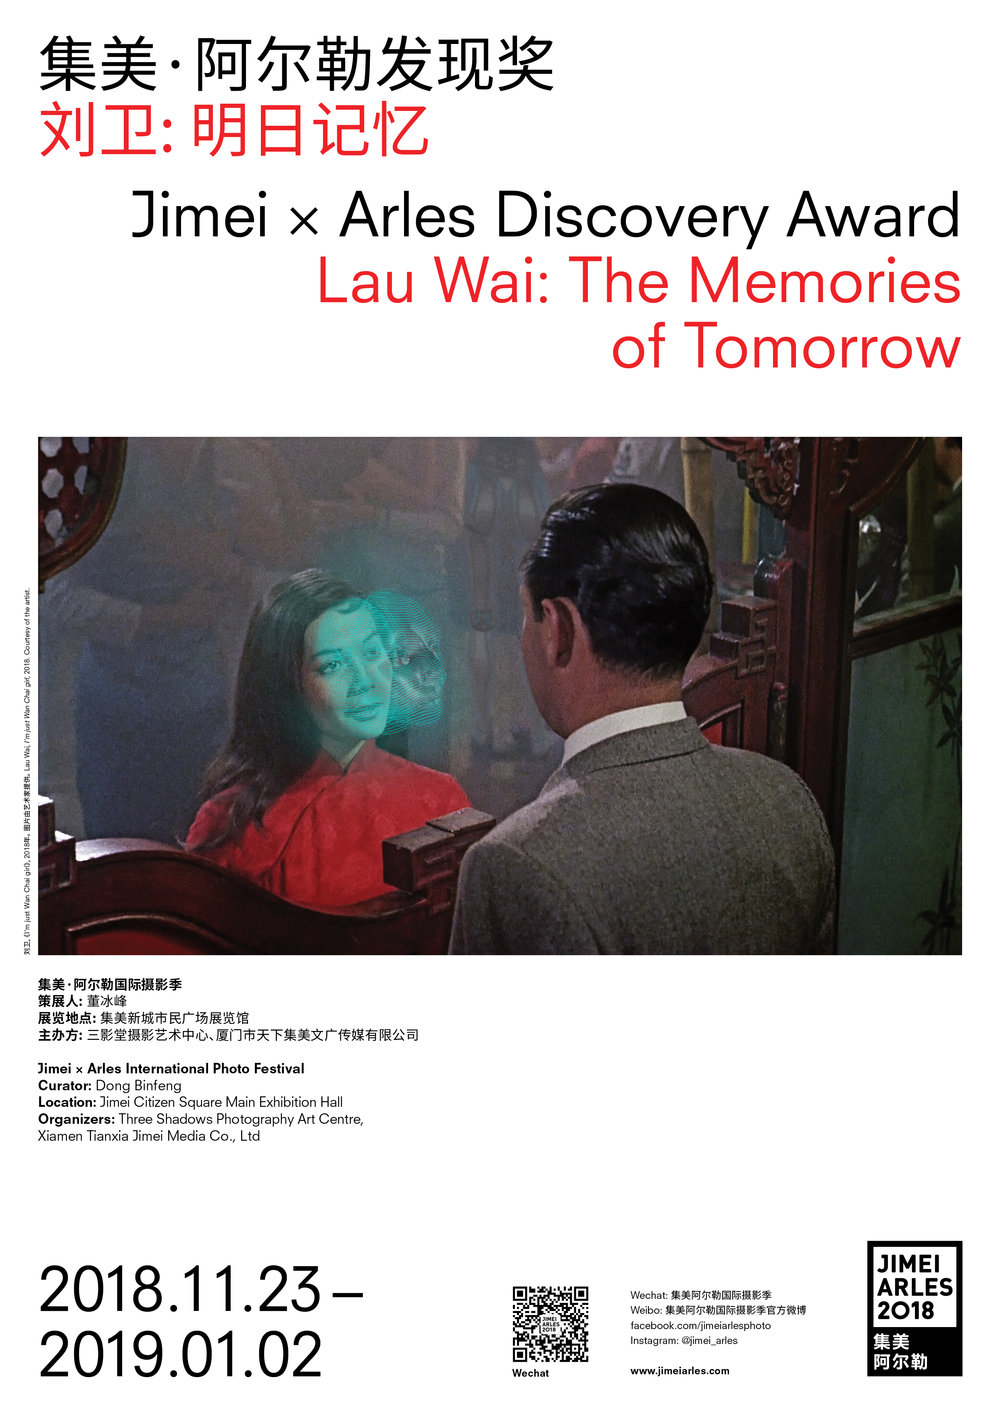 JIMEIARLES_exhibition poster_Digital_Lau_Wai.jpg